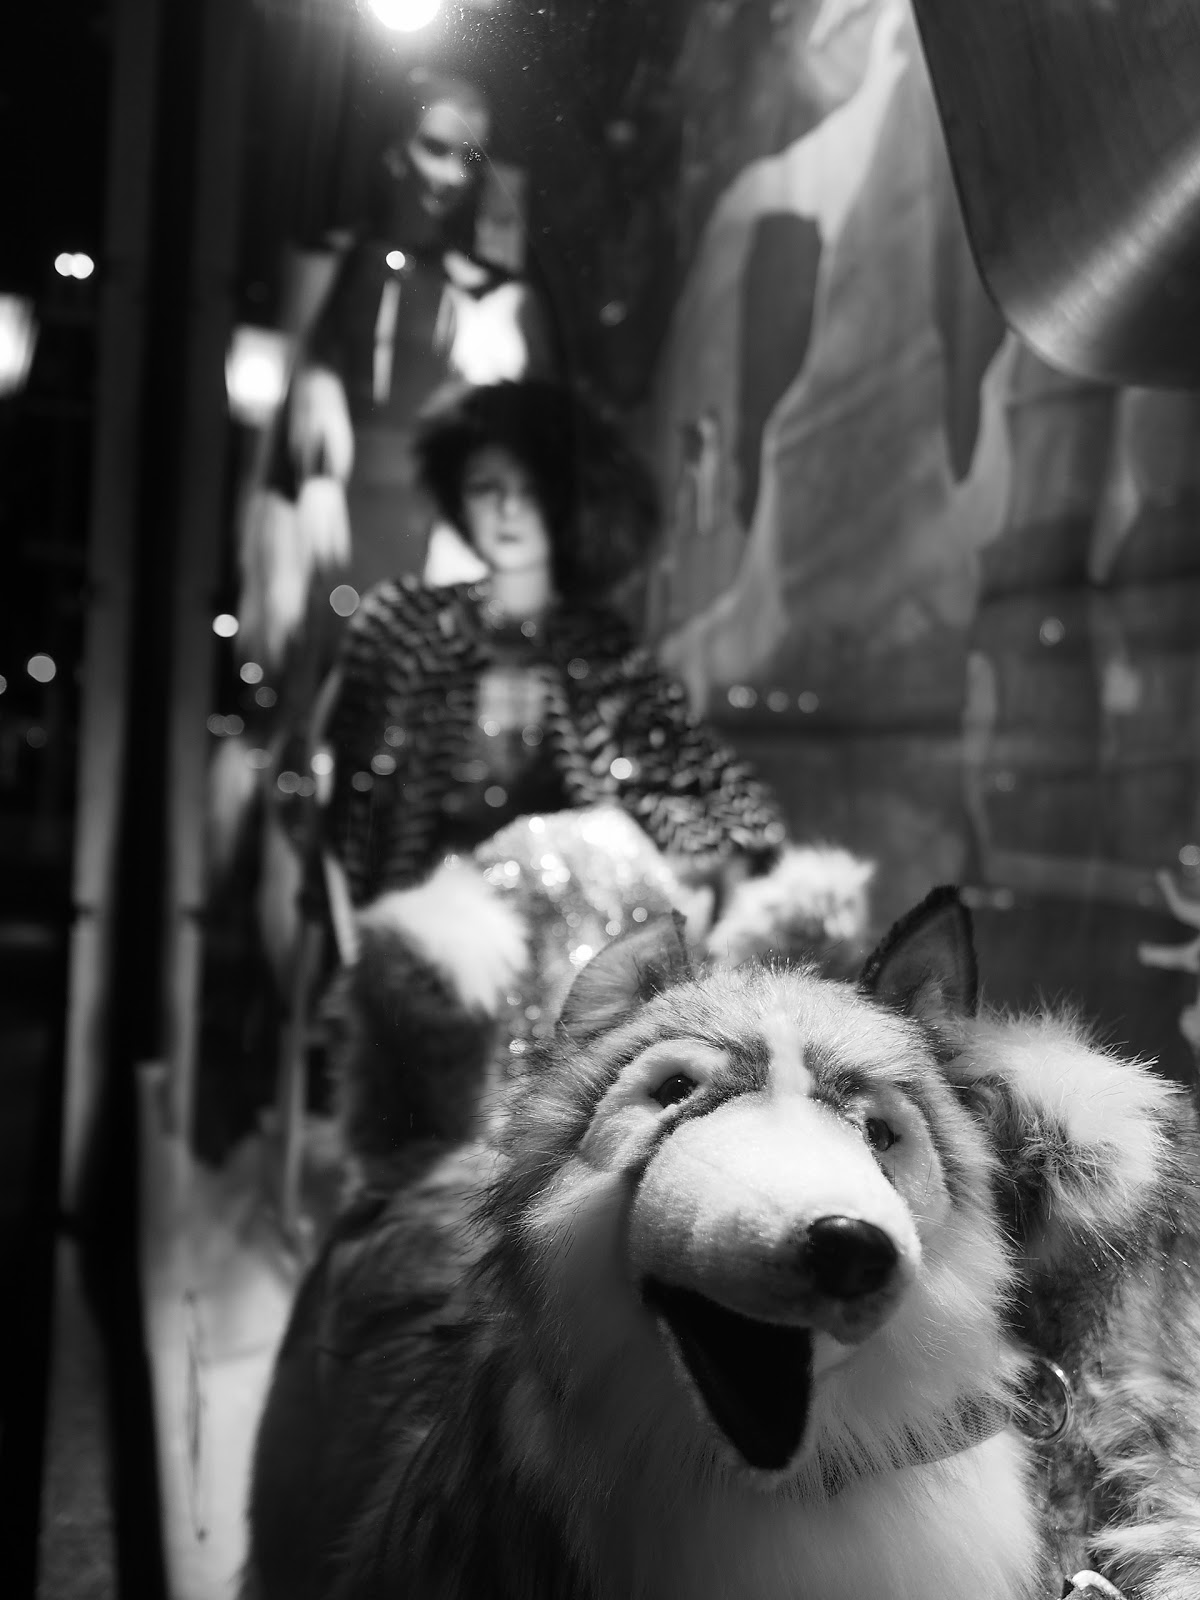 Plush #Plush #bgwindows #windowwatchers #holidaywindows #5thavenuewindows #NYC  #holidays #besttimeoftheyear #nyc ©2014 Nancy Lundebjerg